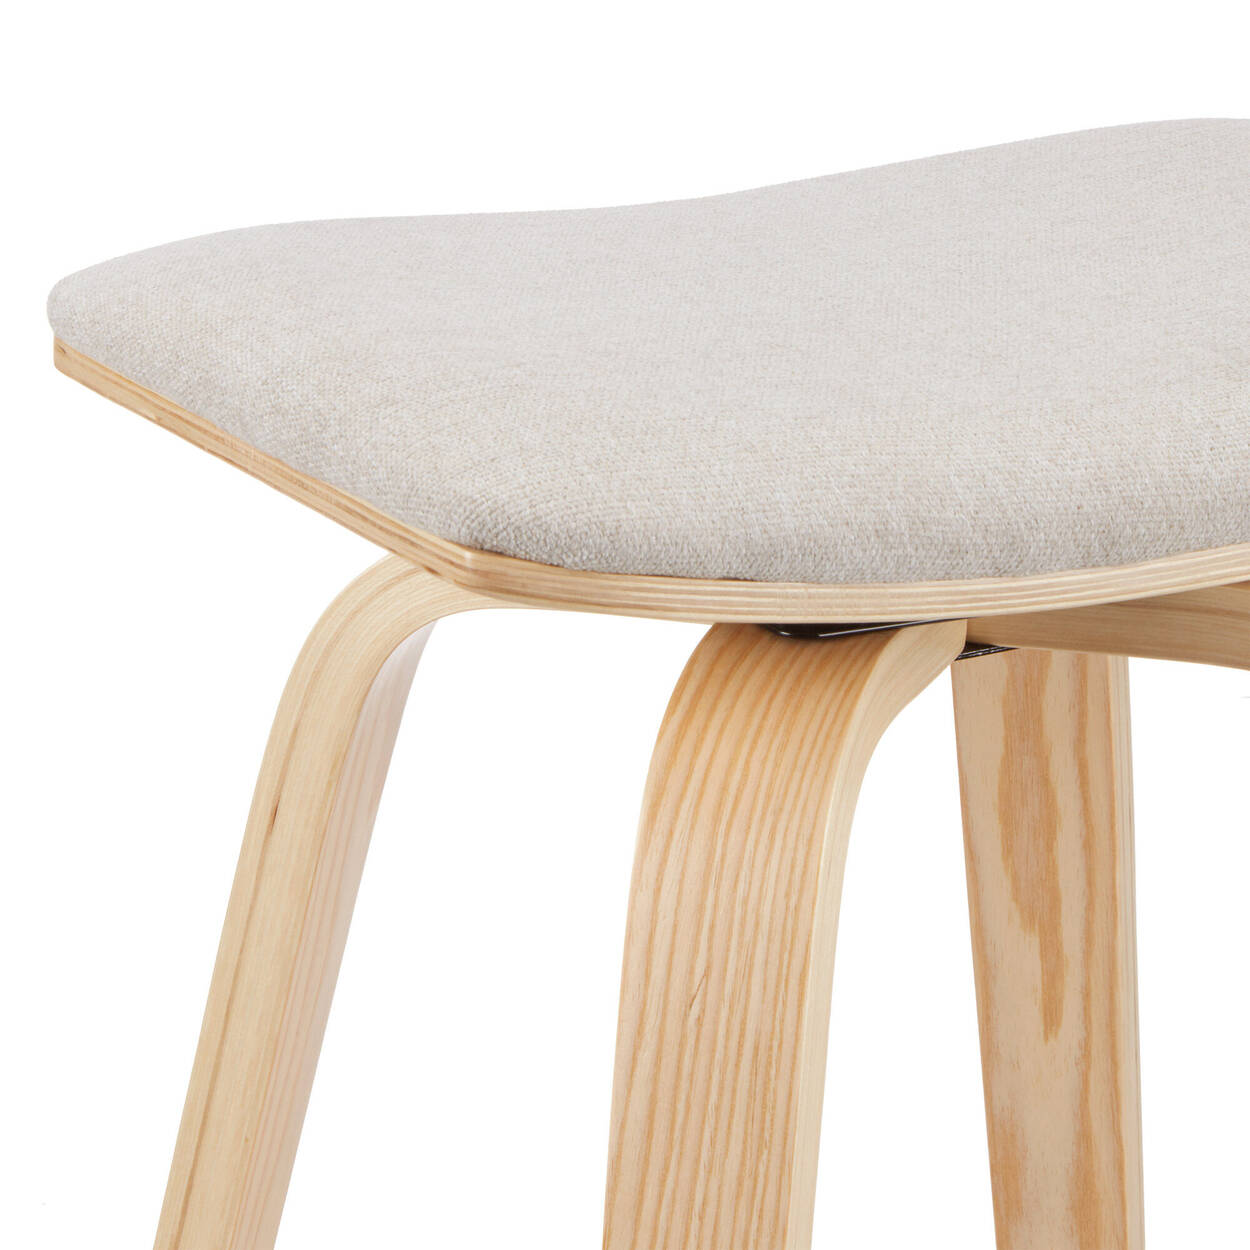 Fabric and Natural Wood Backless Stool